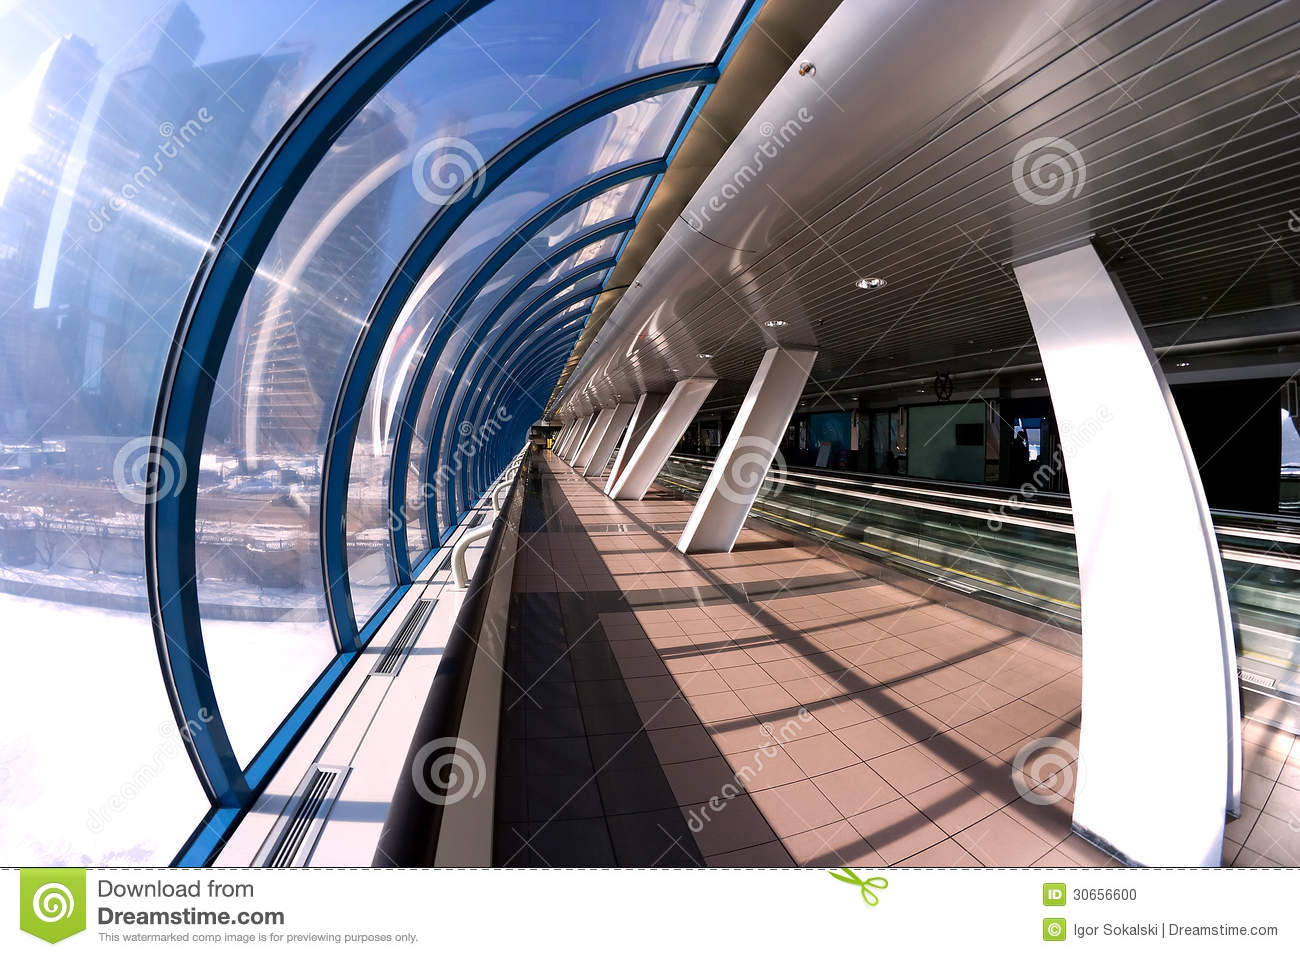 Modern Architecture Interior modern architecture interior royalty free stock photo - image